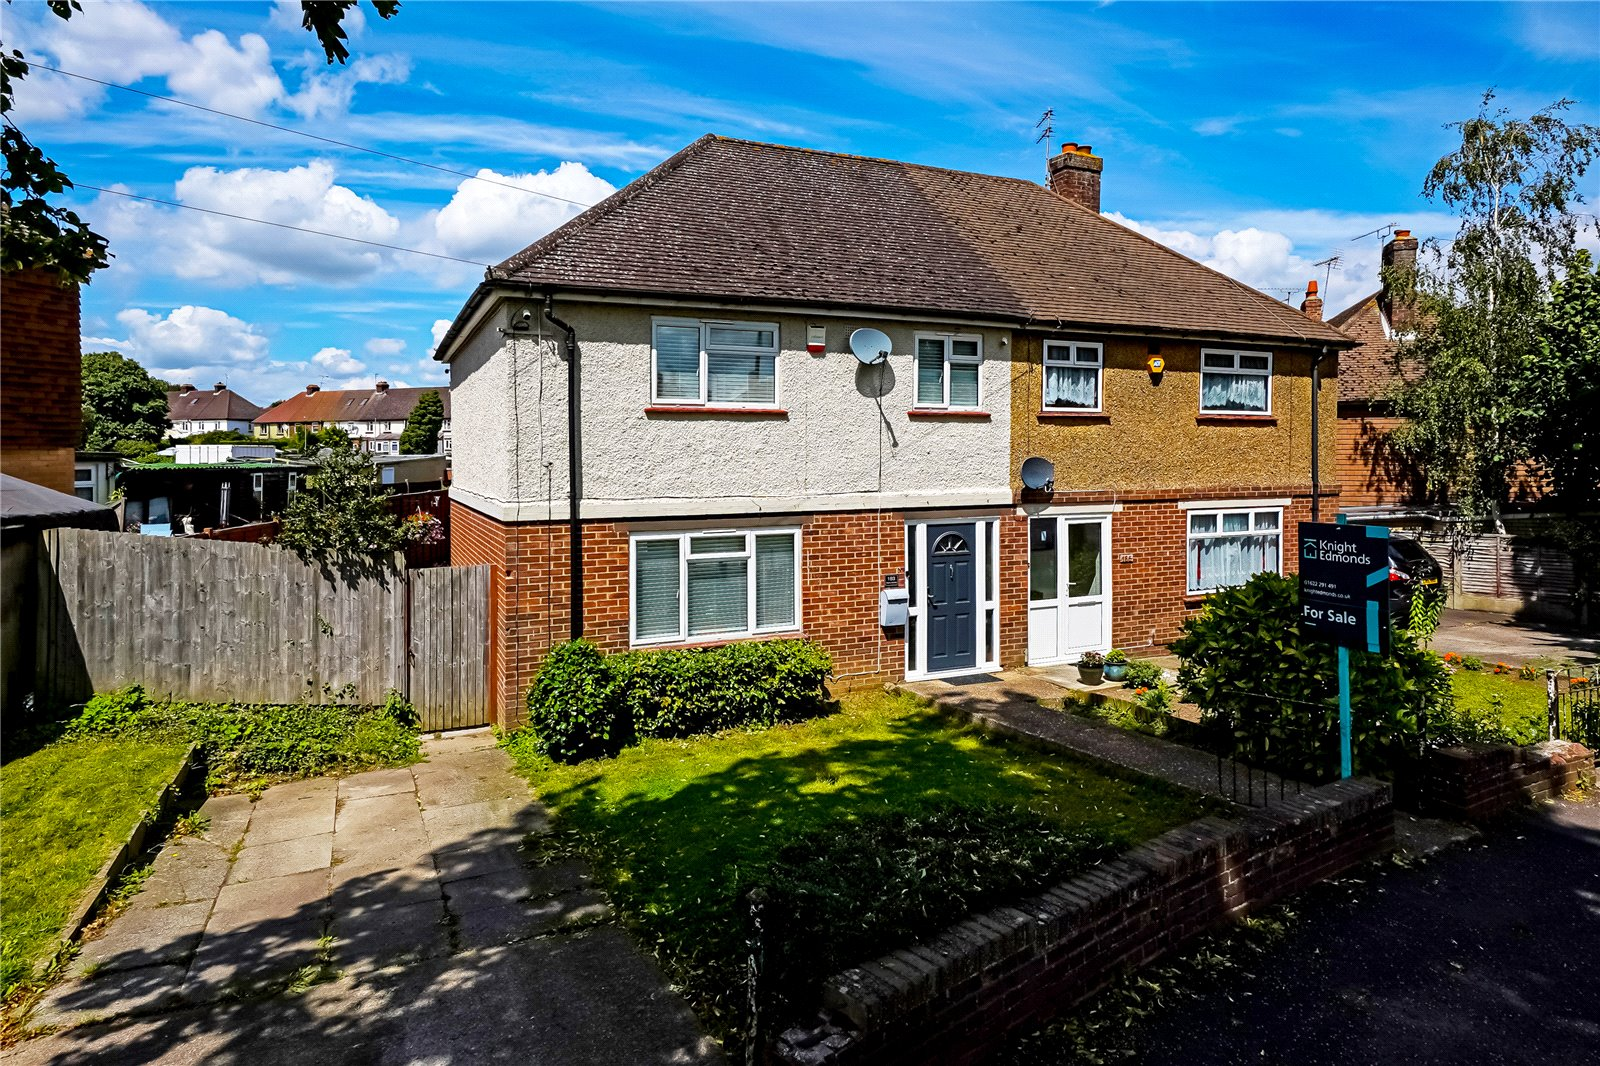 3 bed house for sale in Plains Avenue, Maidstone, ME15